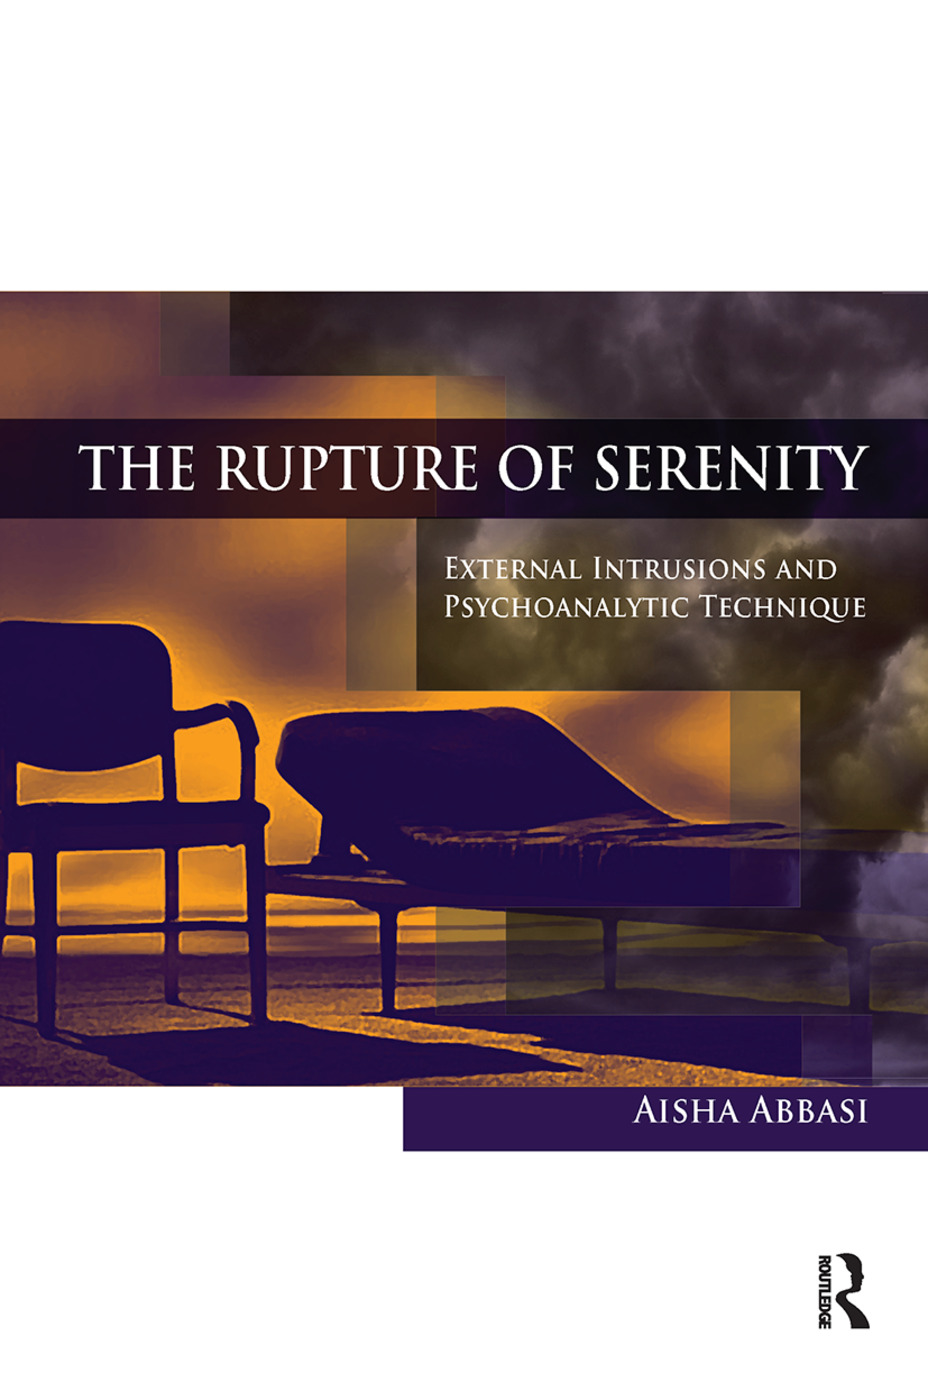 The Rupture of Serenity: External Intrusions and Psychoanalytic Technique book cover